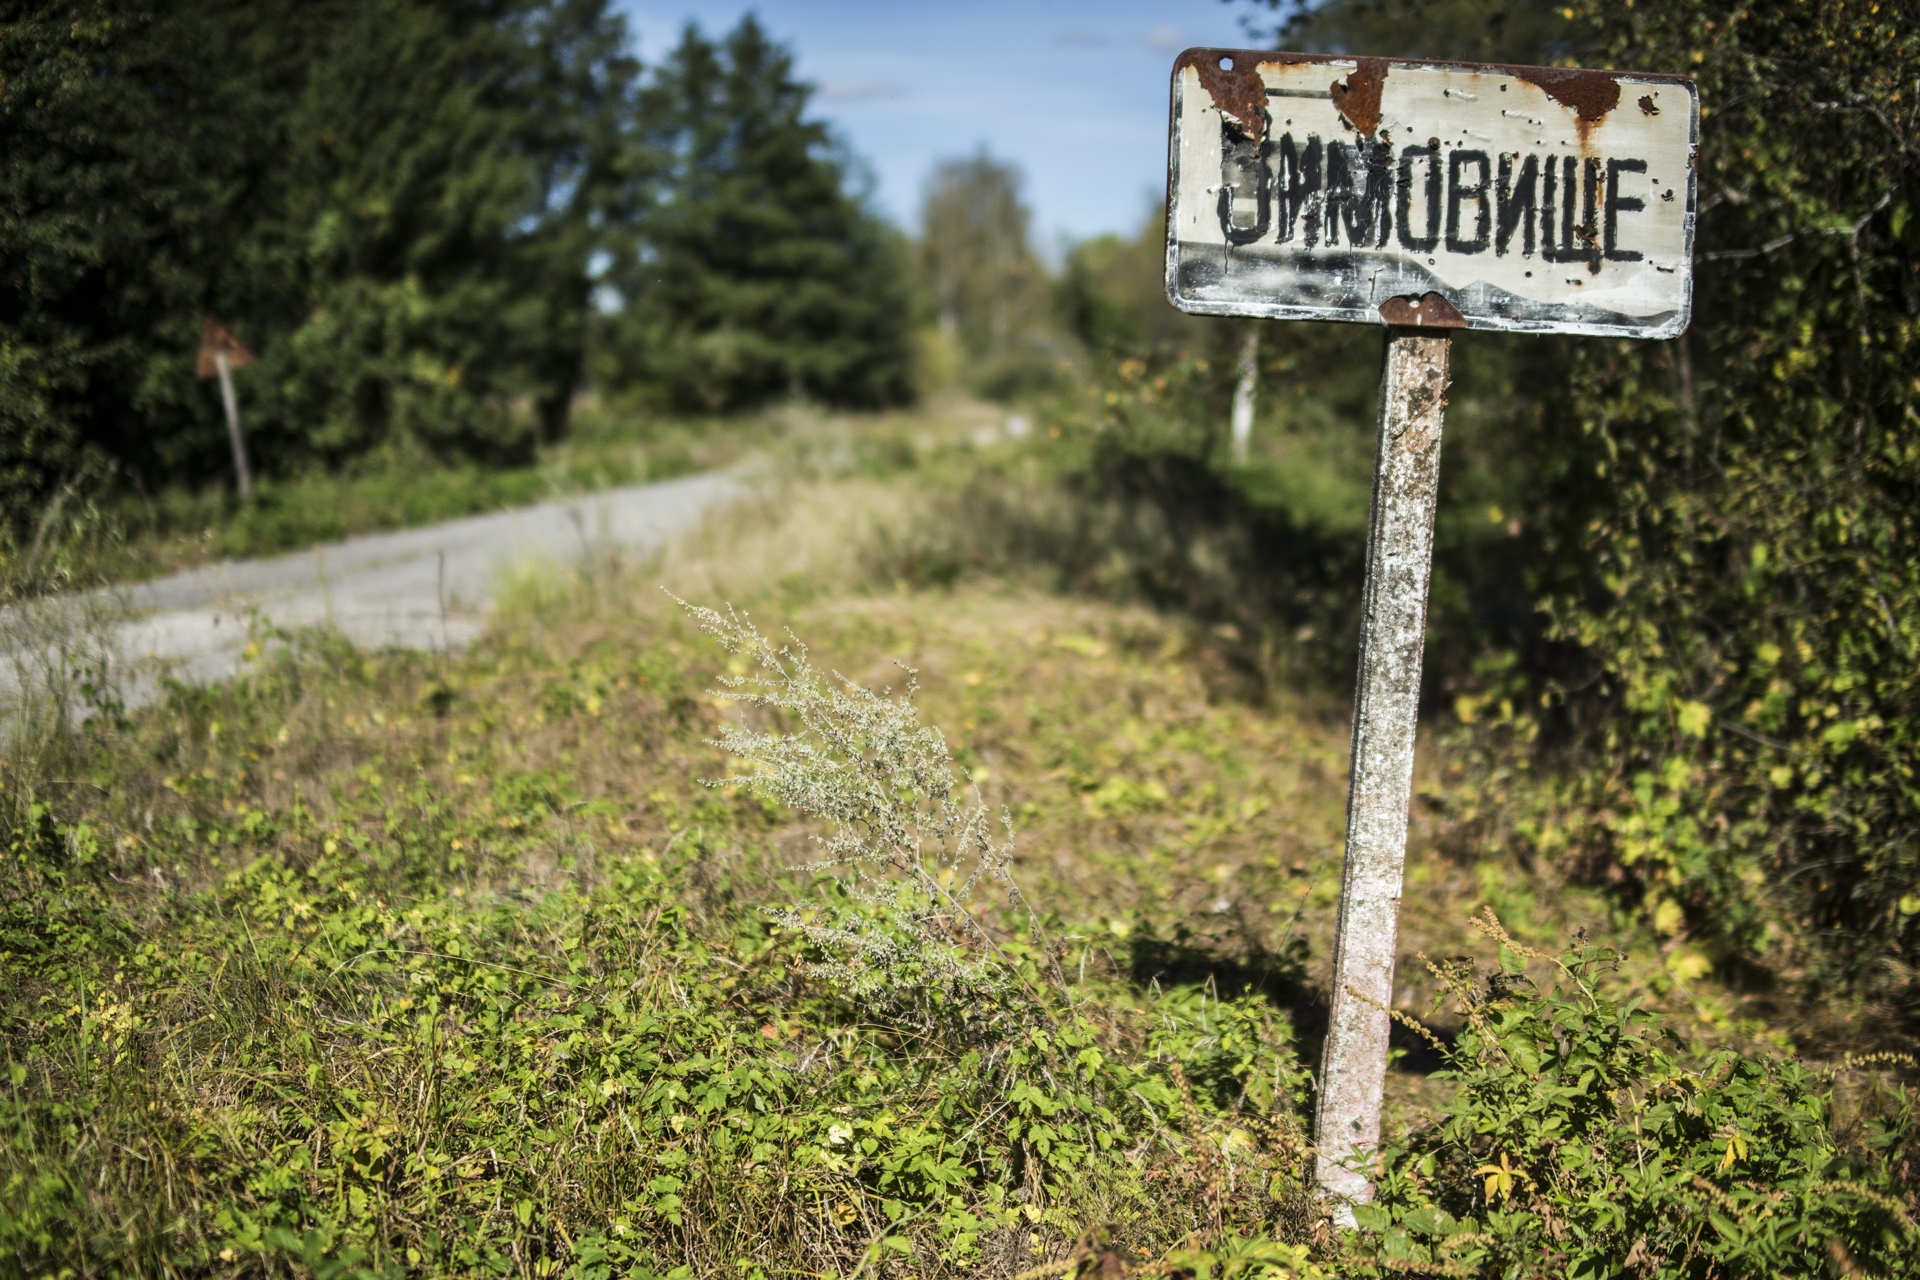 The exclusion zone's villages and towns were evacuated and have laid empty ever since.